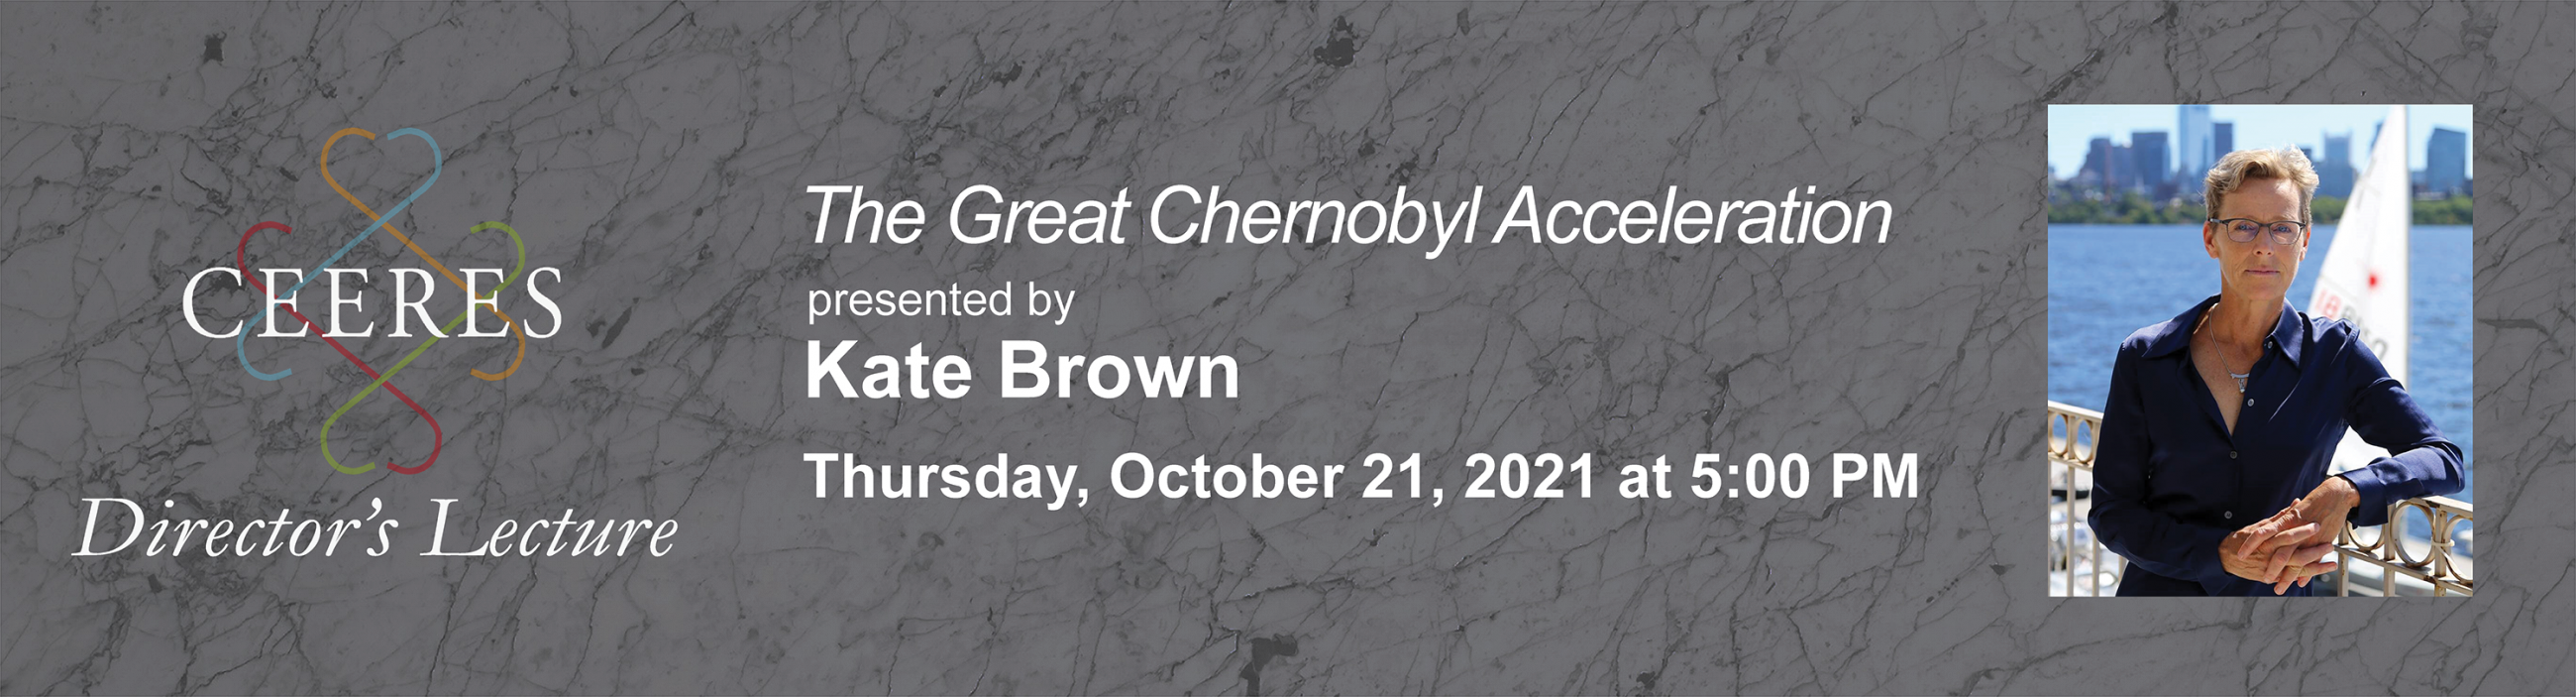 Kate Brown The Great Chernobyl Acceleration